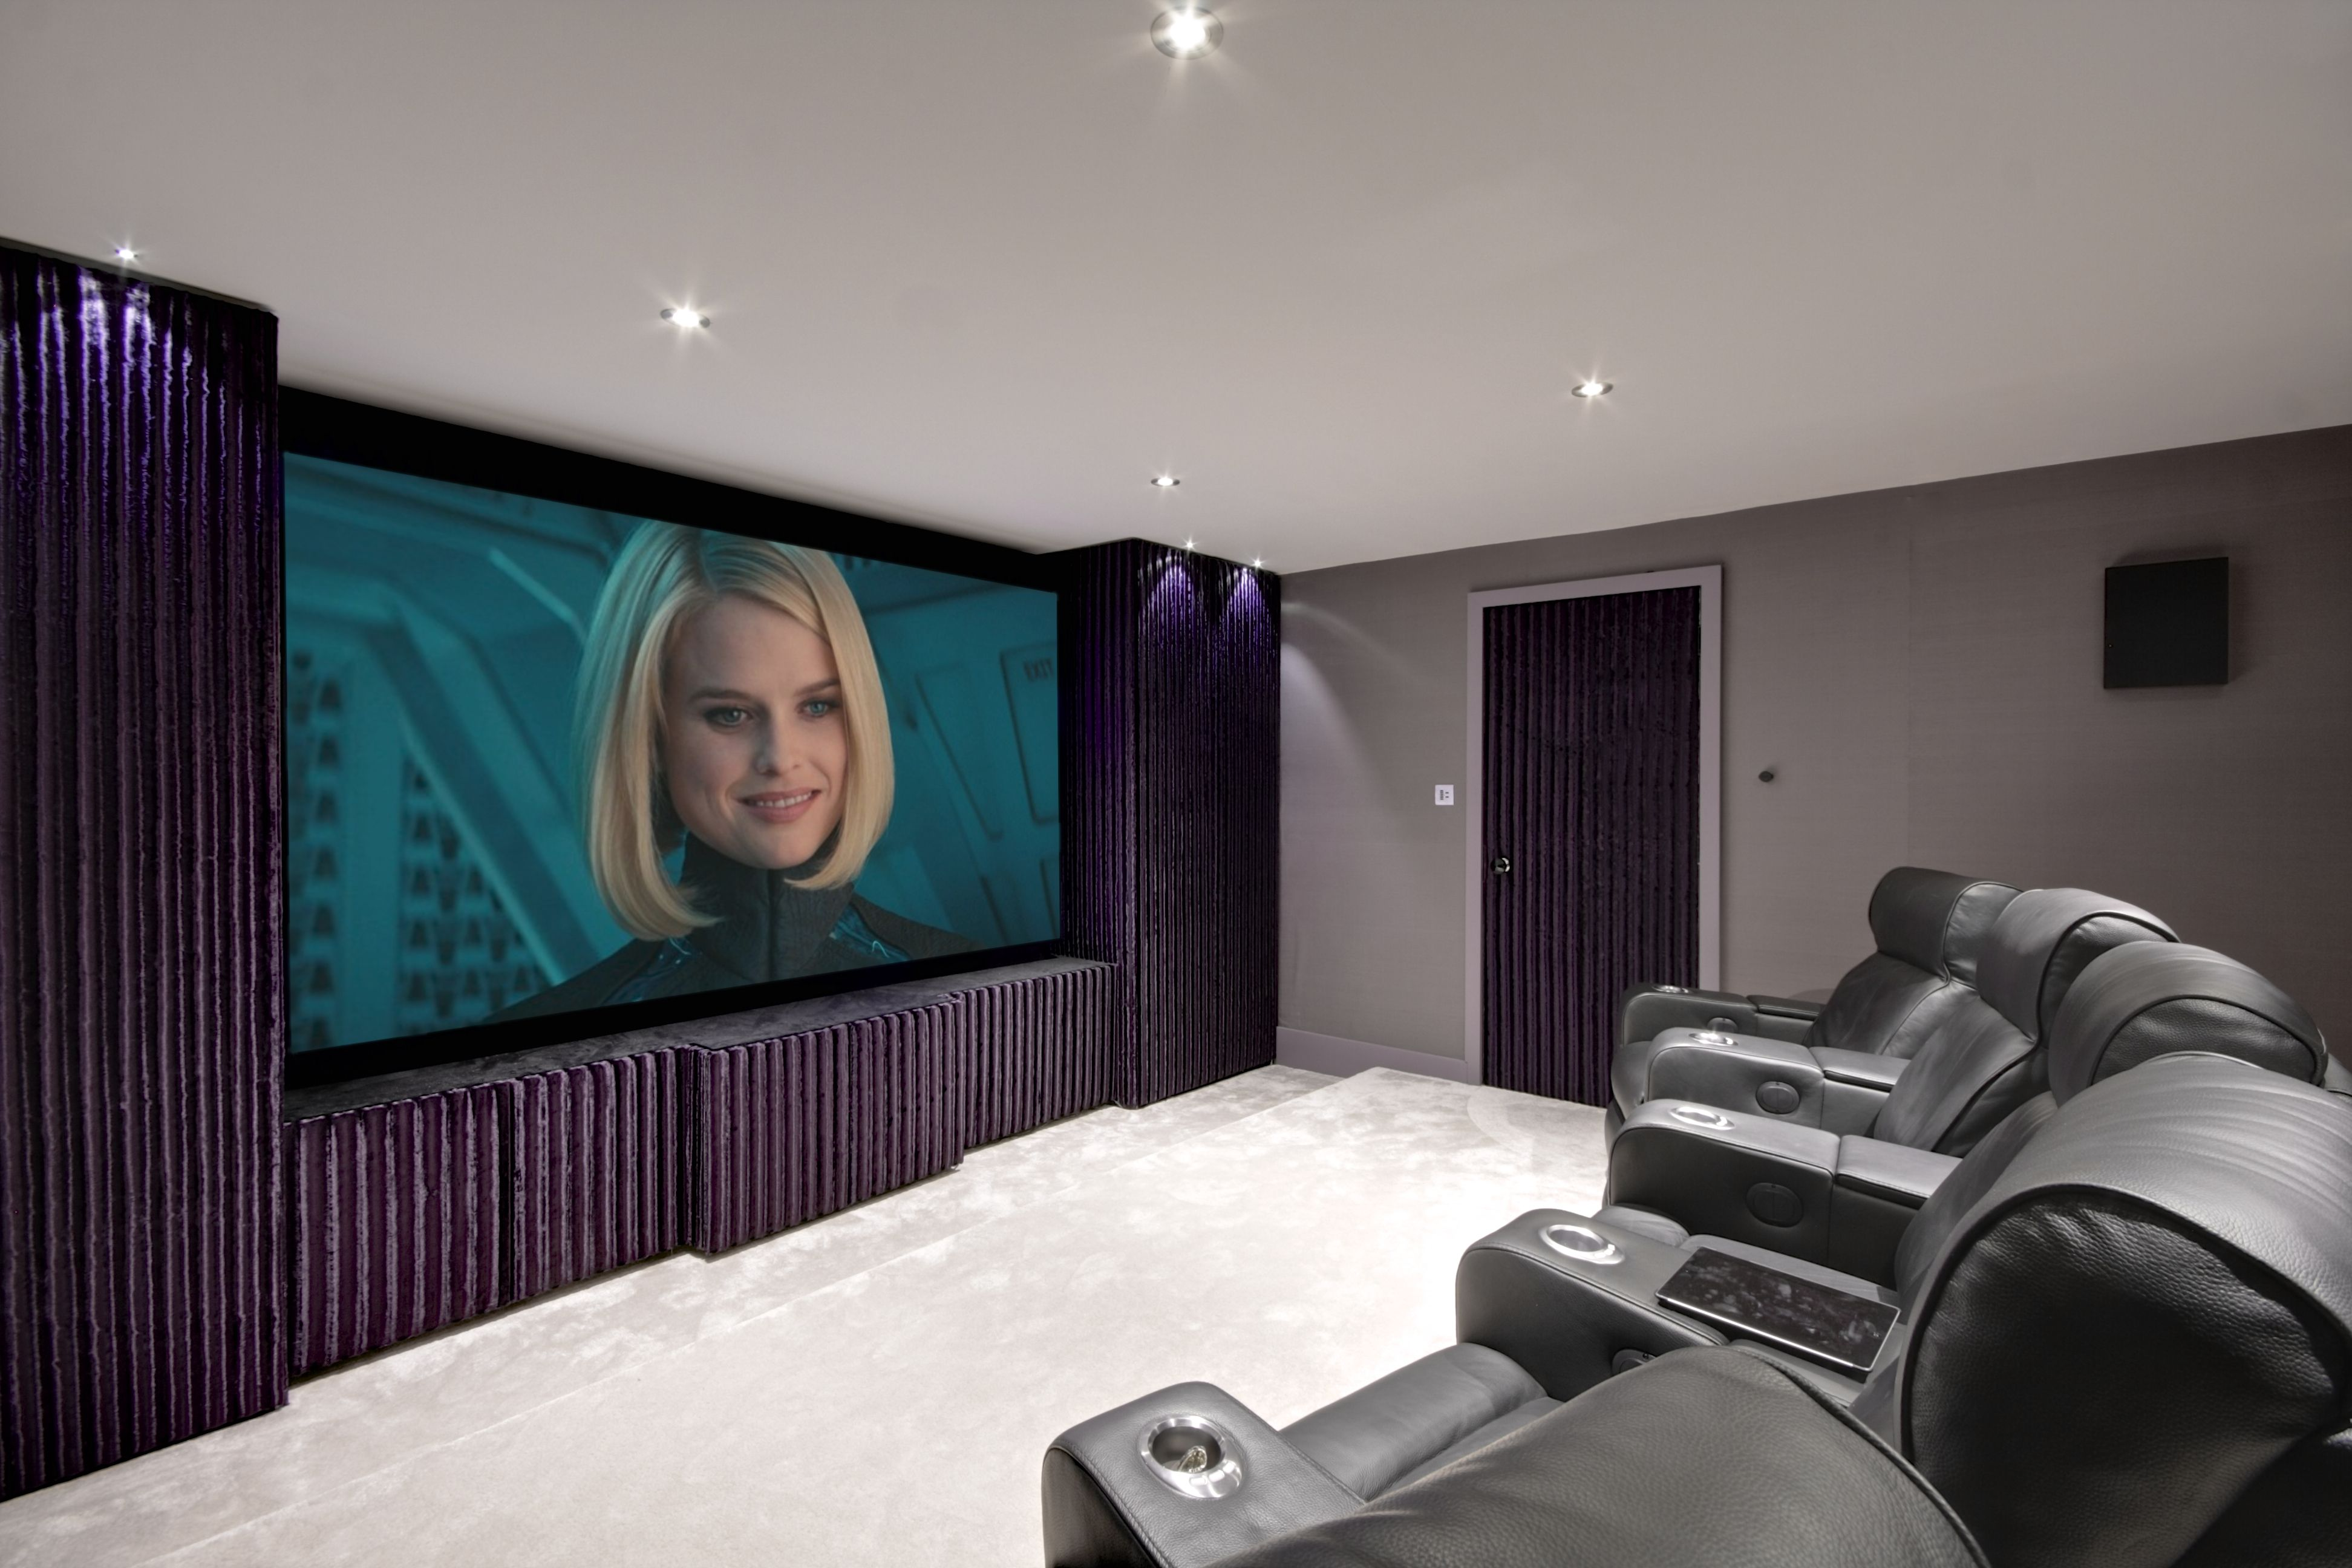 hight resolution of home cinema garage conversion home theater design home theater setup home theater seating